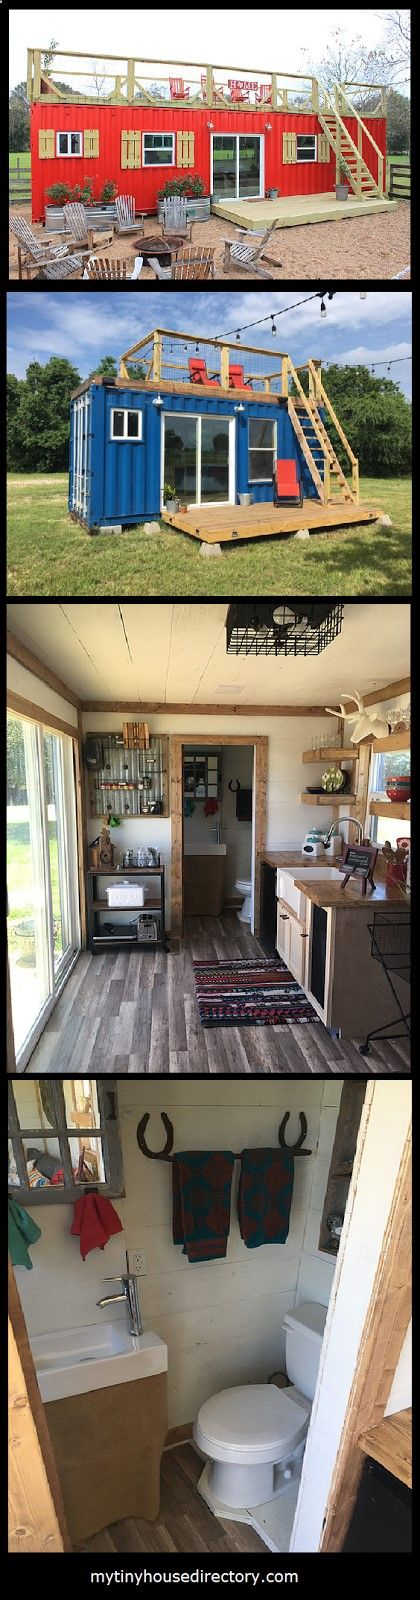 Container House - mytinyhousedirectory: Backcountry Containers - Who Else Wants Simple Step-By-Step Plans To Design And Build A Container Home From Scratch?